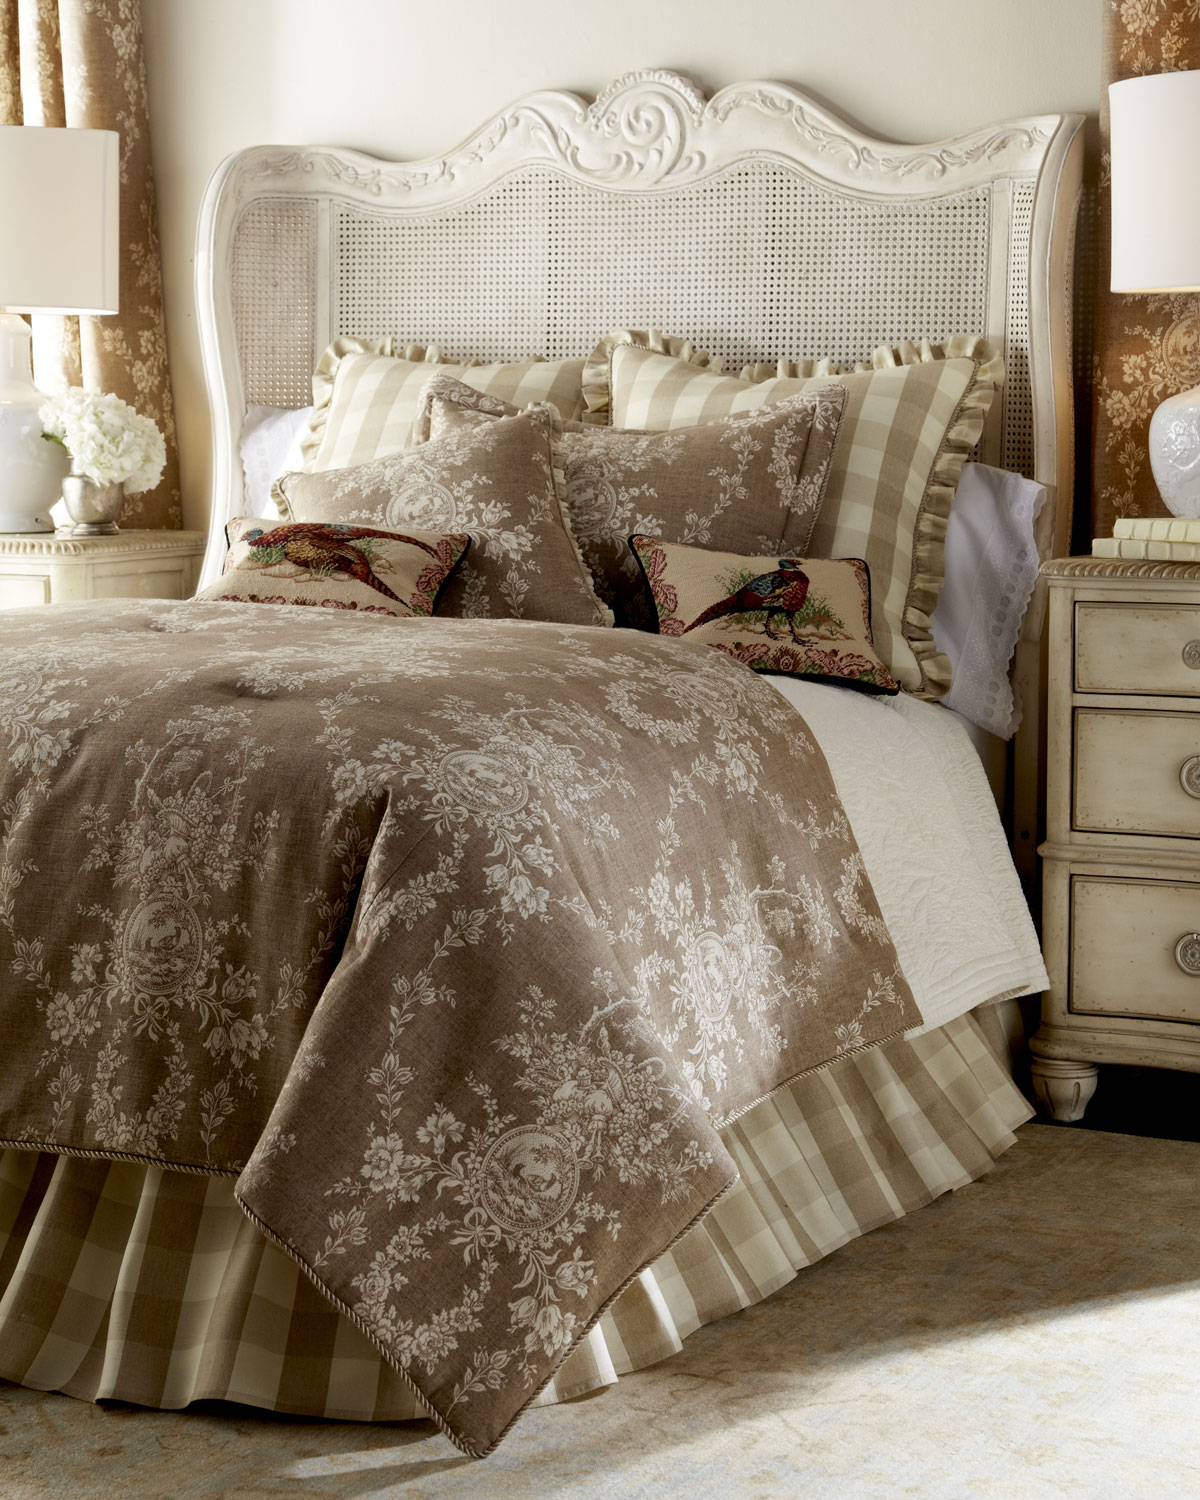 bedding buffalo largea for and perfect plaid taupe check sets setsa crib comforter setsf queen set gray beddingf bed